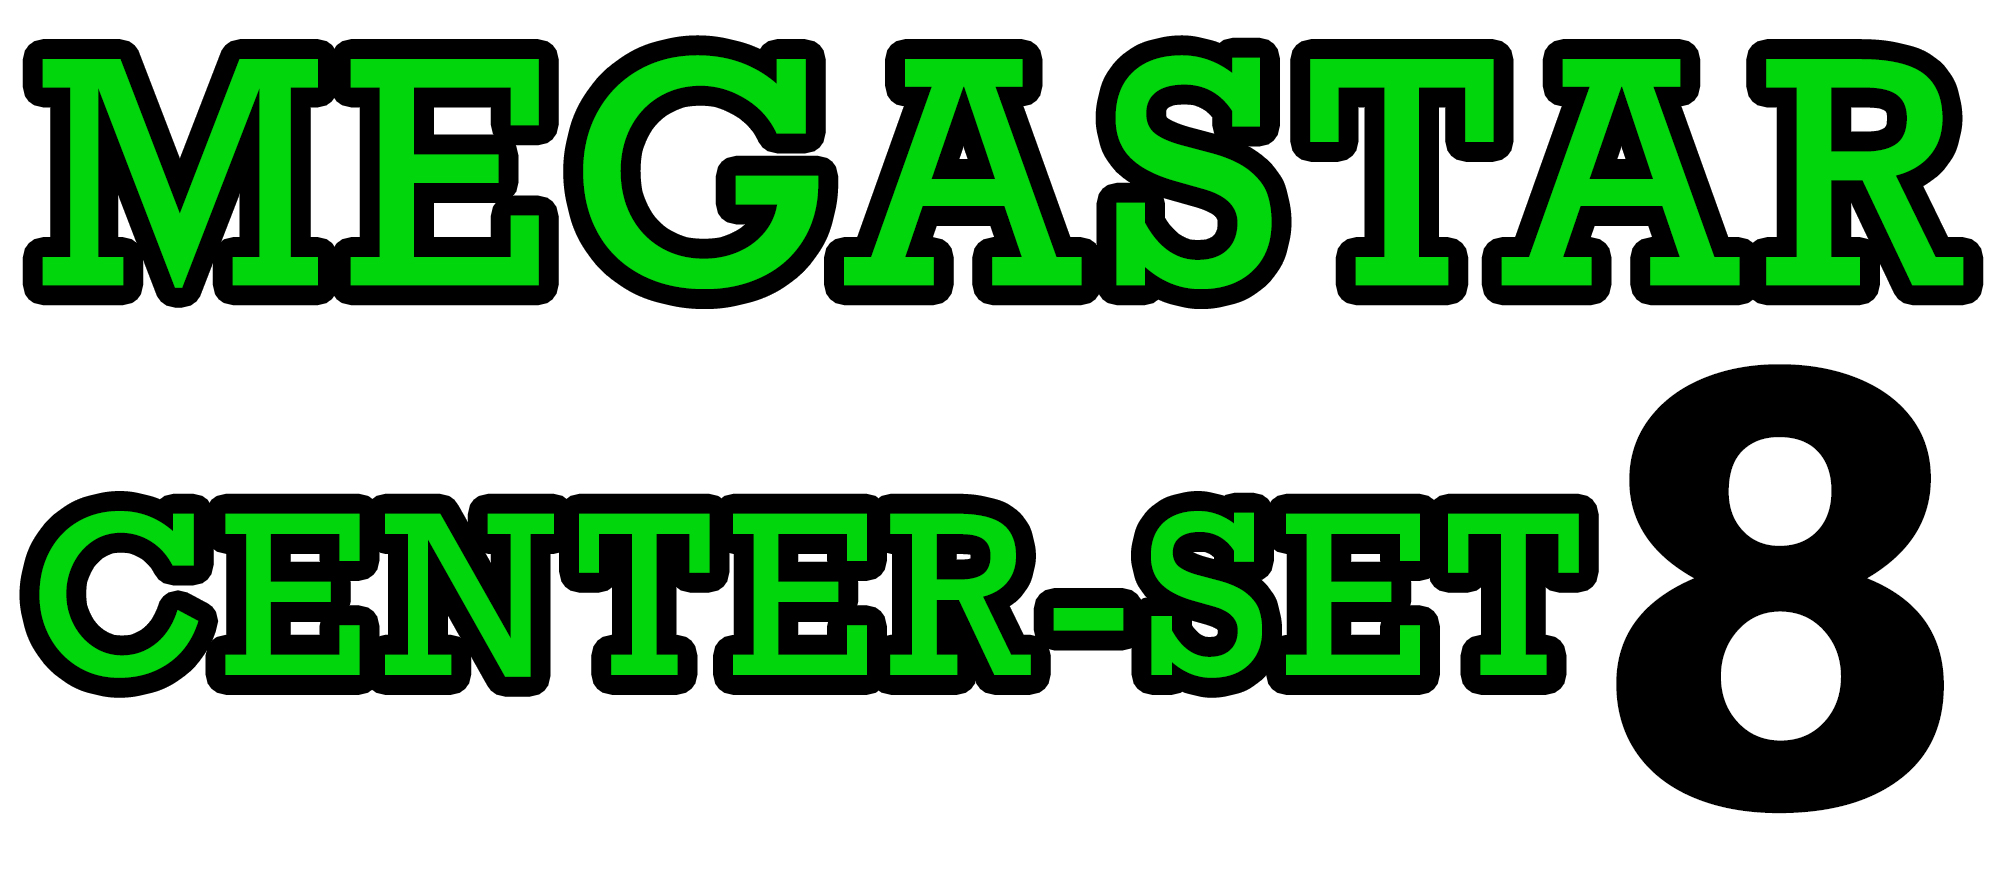 Custom MEGASTAR Wheel using 8 Inch Tyres